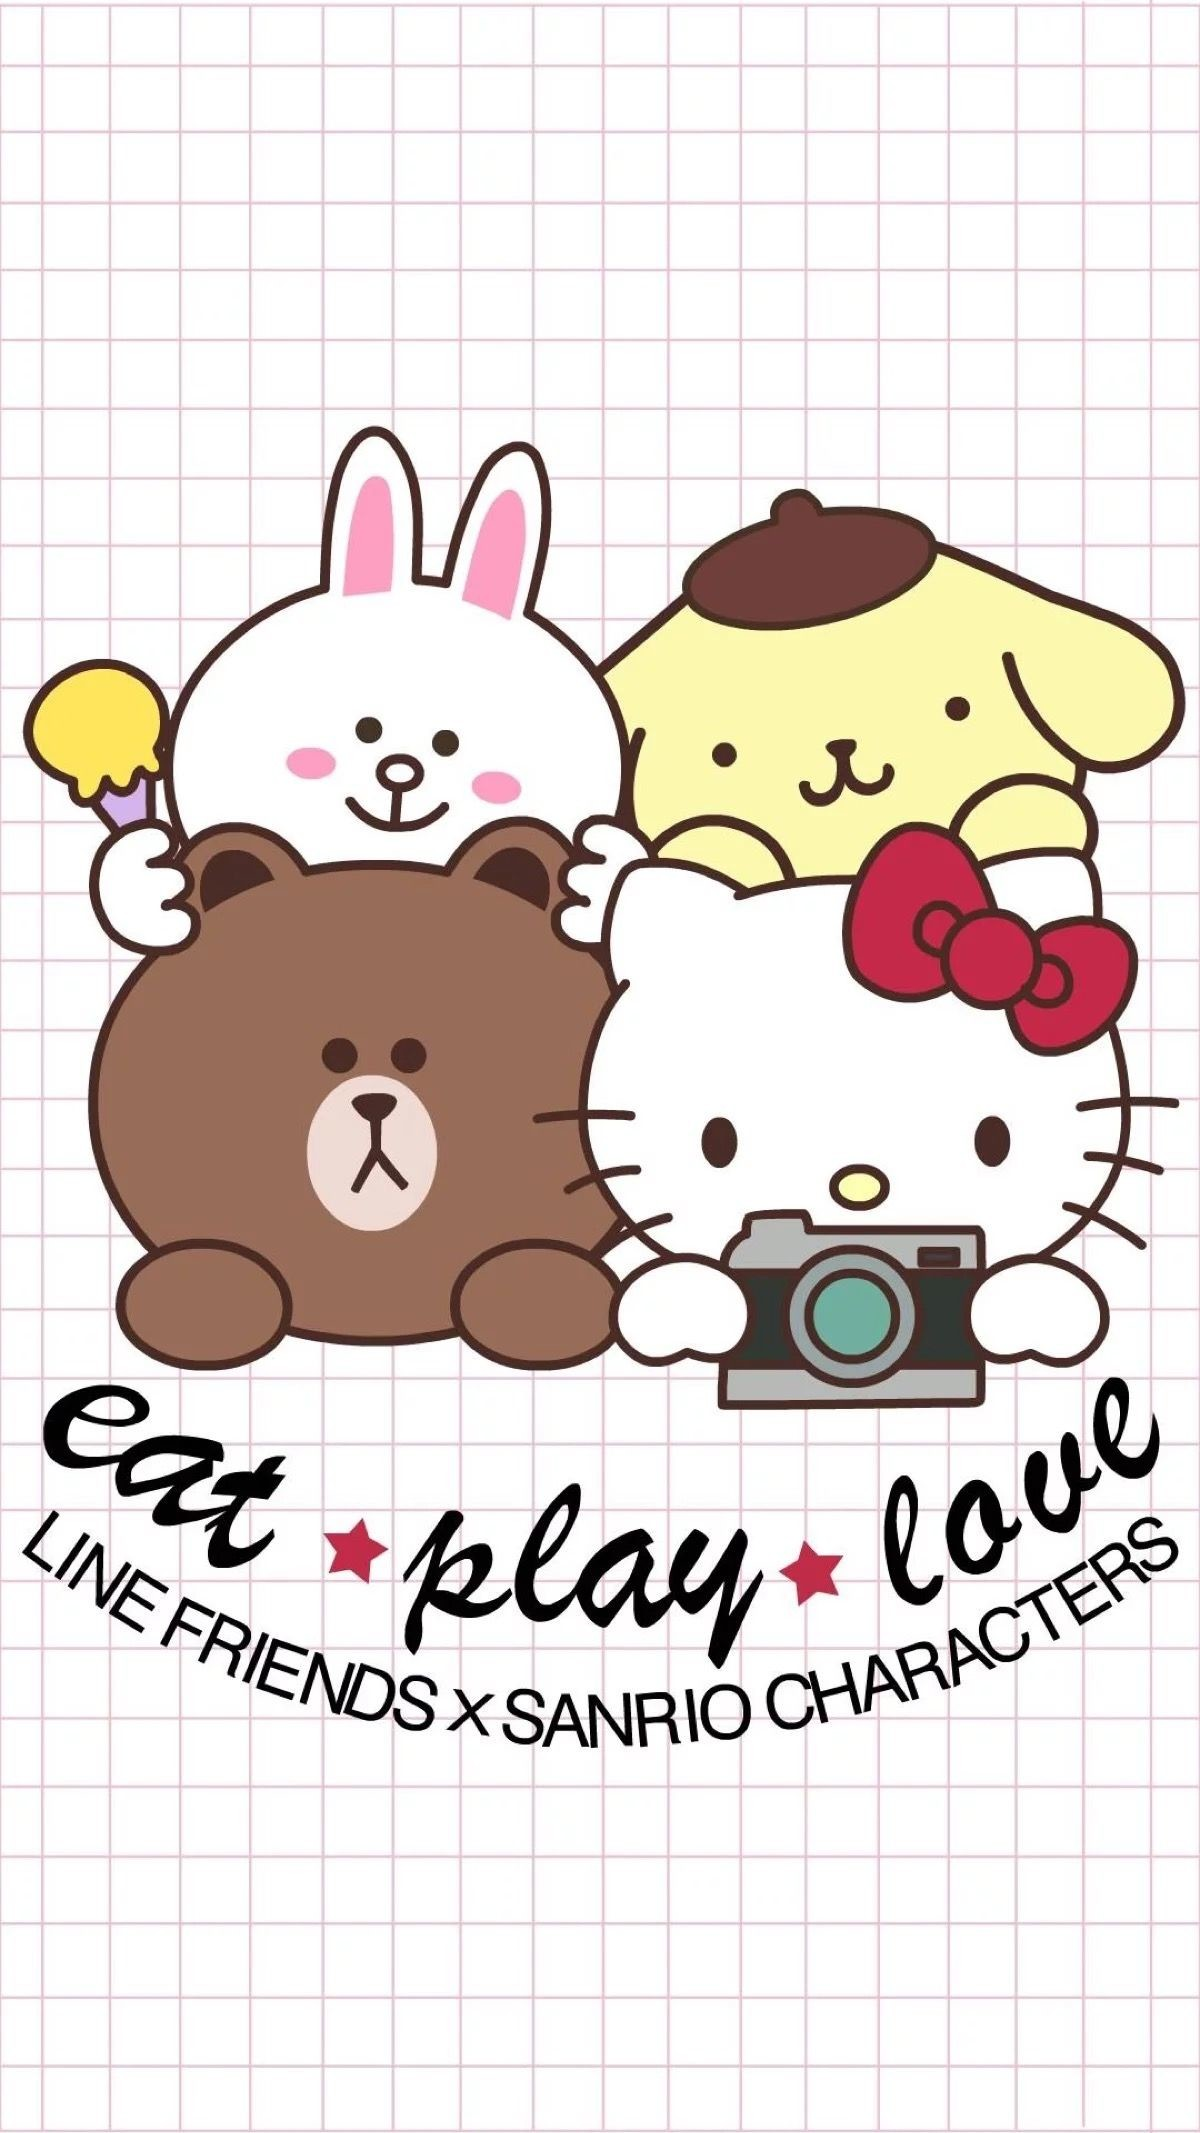 Sanrio Friends Wallpaper Wallpapers Kitty Wallpaper